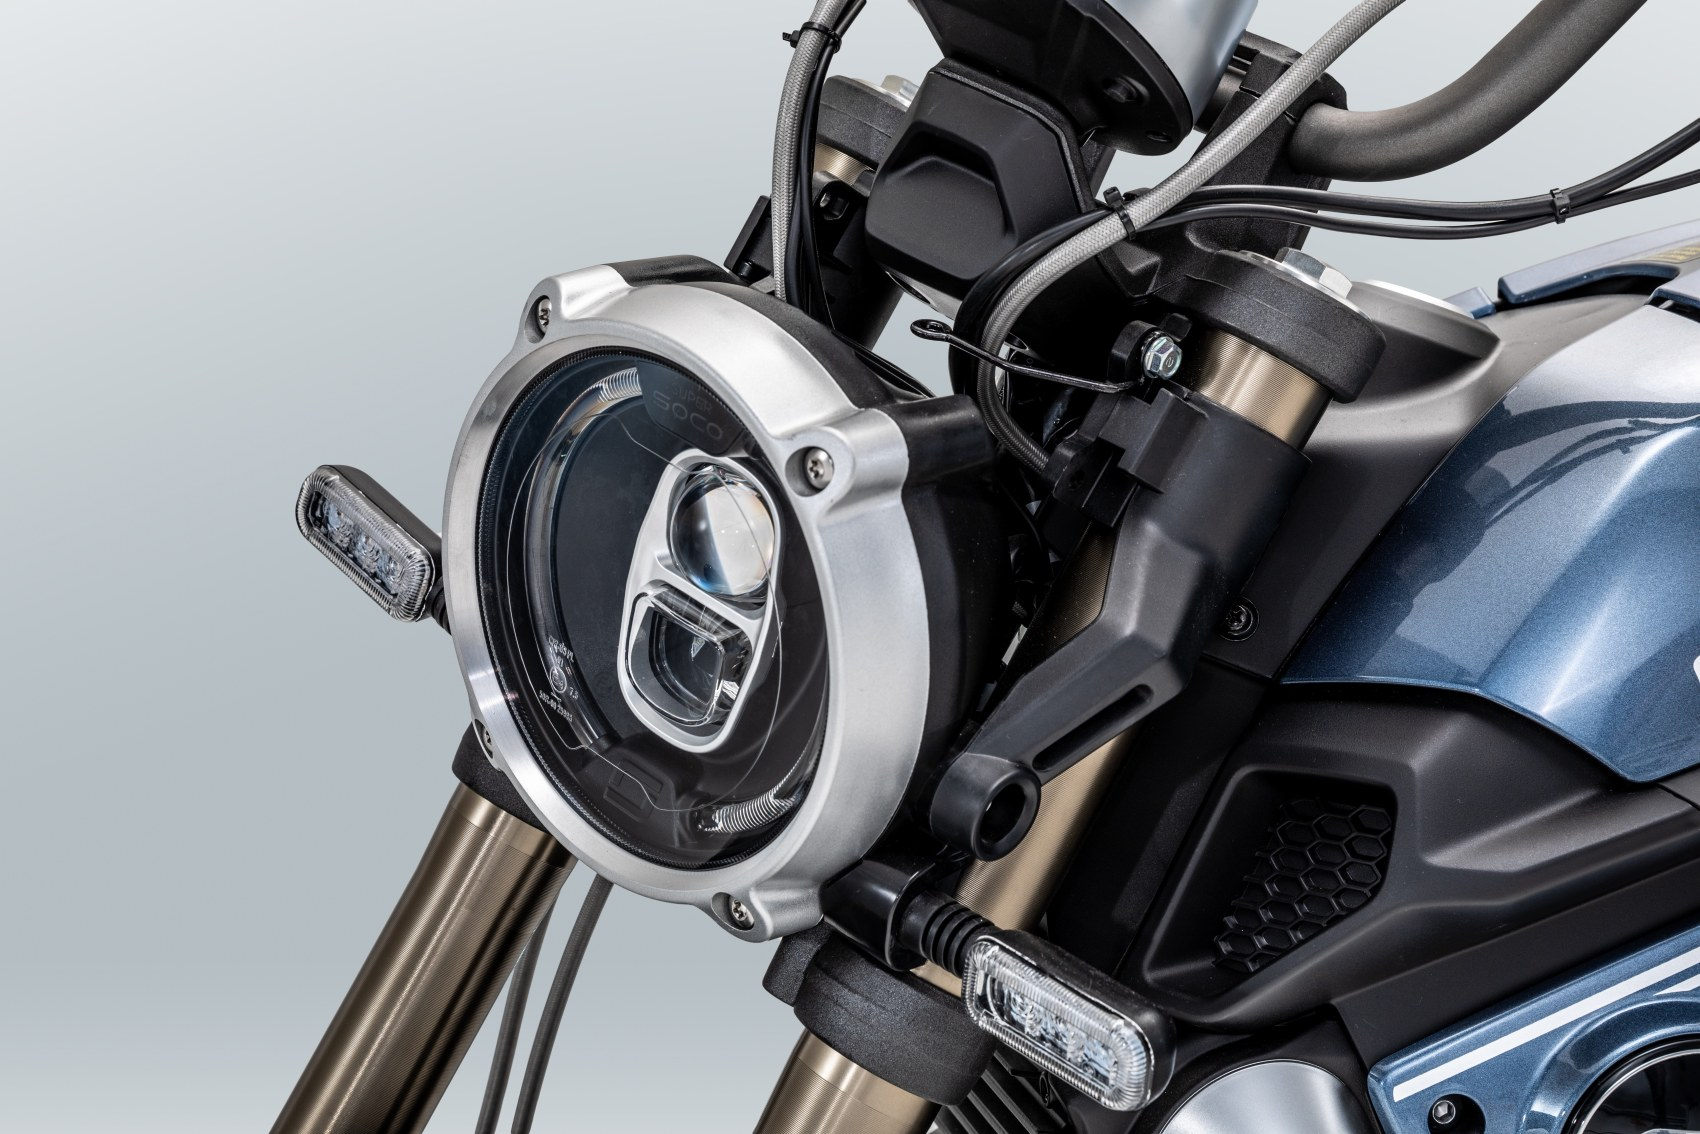 Super Soco TC electric motorcycle front headlight unit